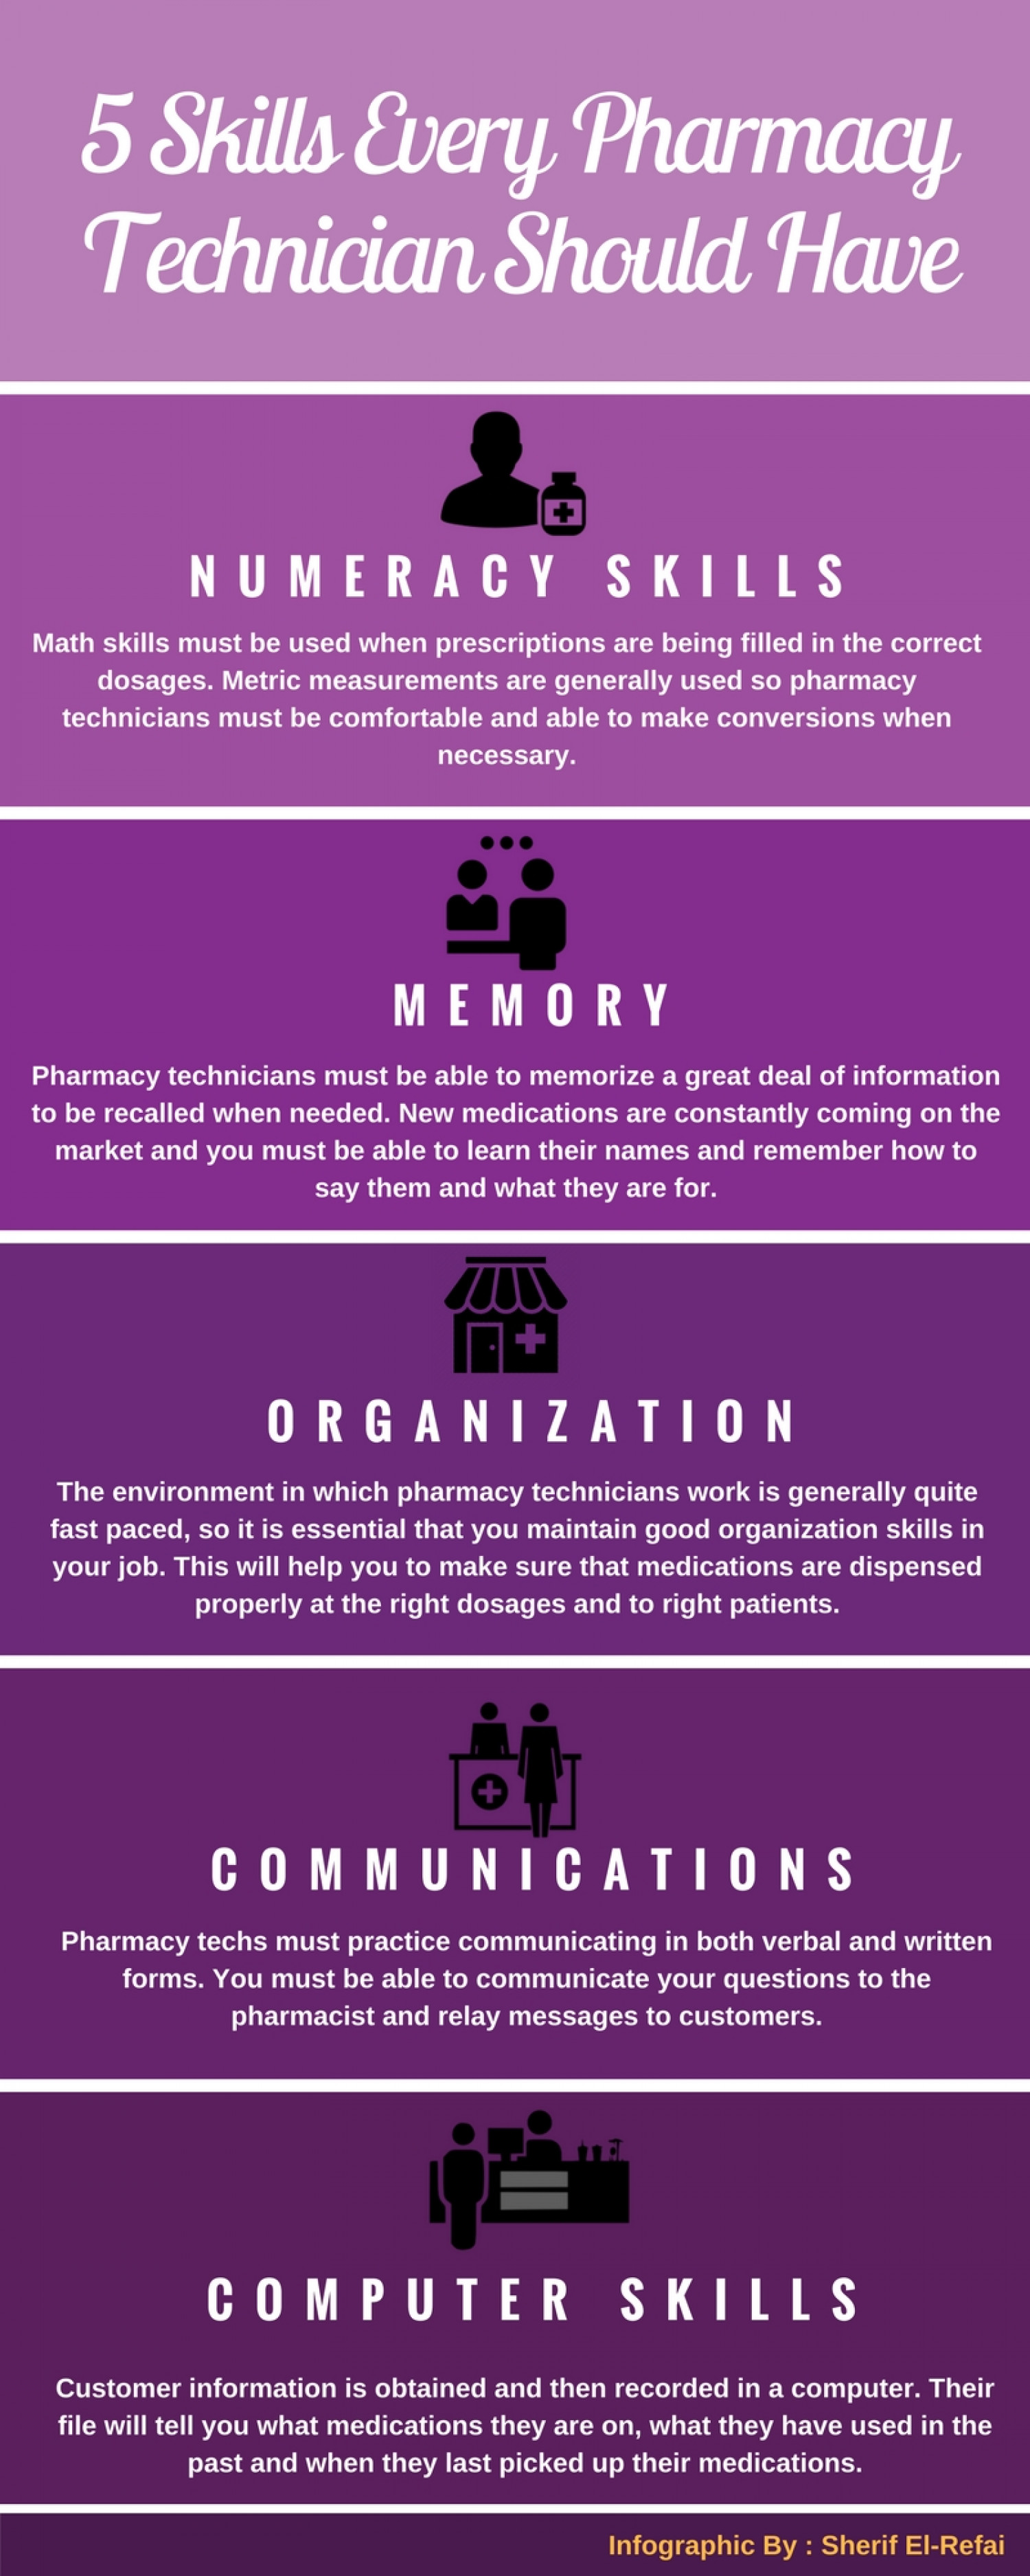 5 Skills Every Pharmacy Technician Should Have - Sherif El-Refai Infographic